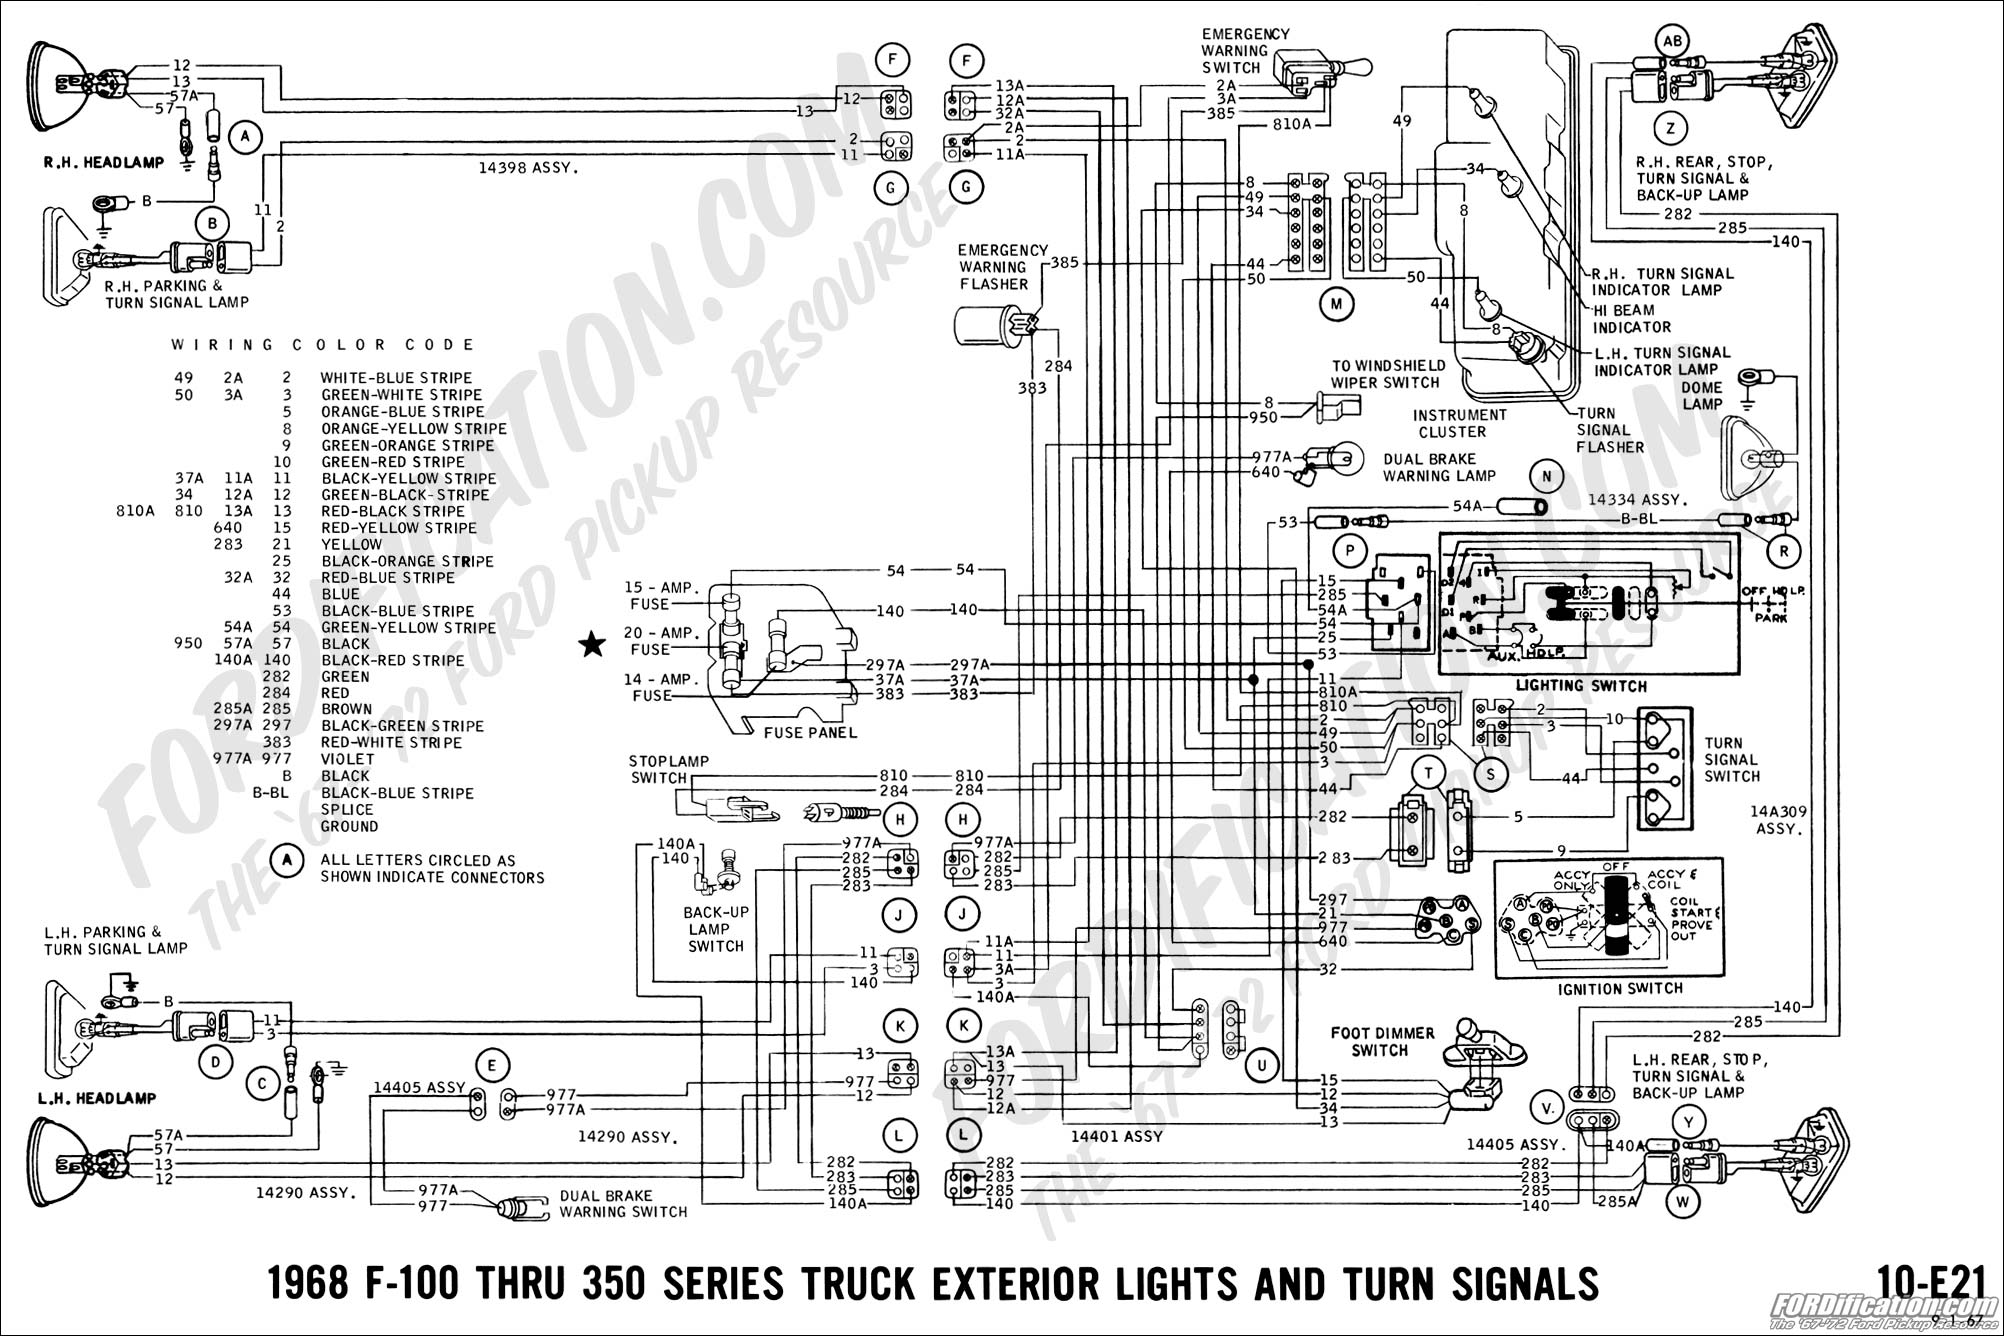 1979 ford duraspark wiring diagram how to read diagrams symbols ignition best library f100 detailed 1968